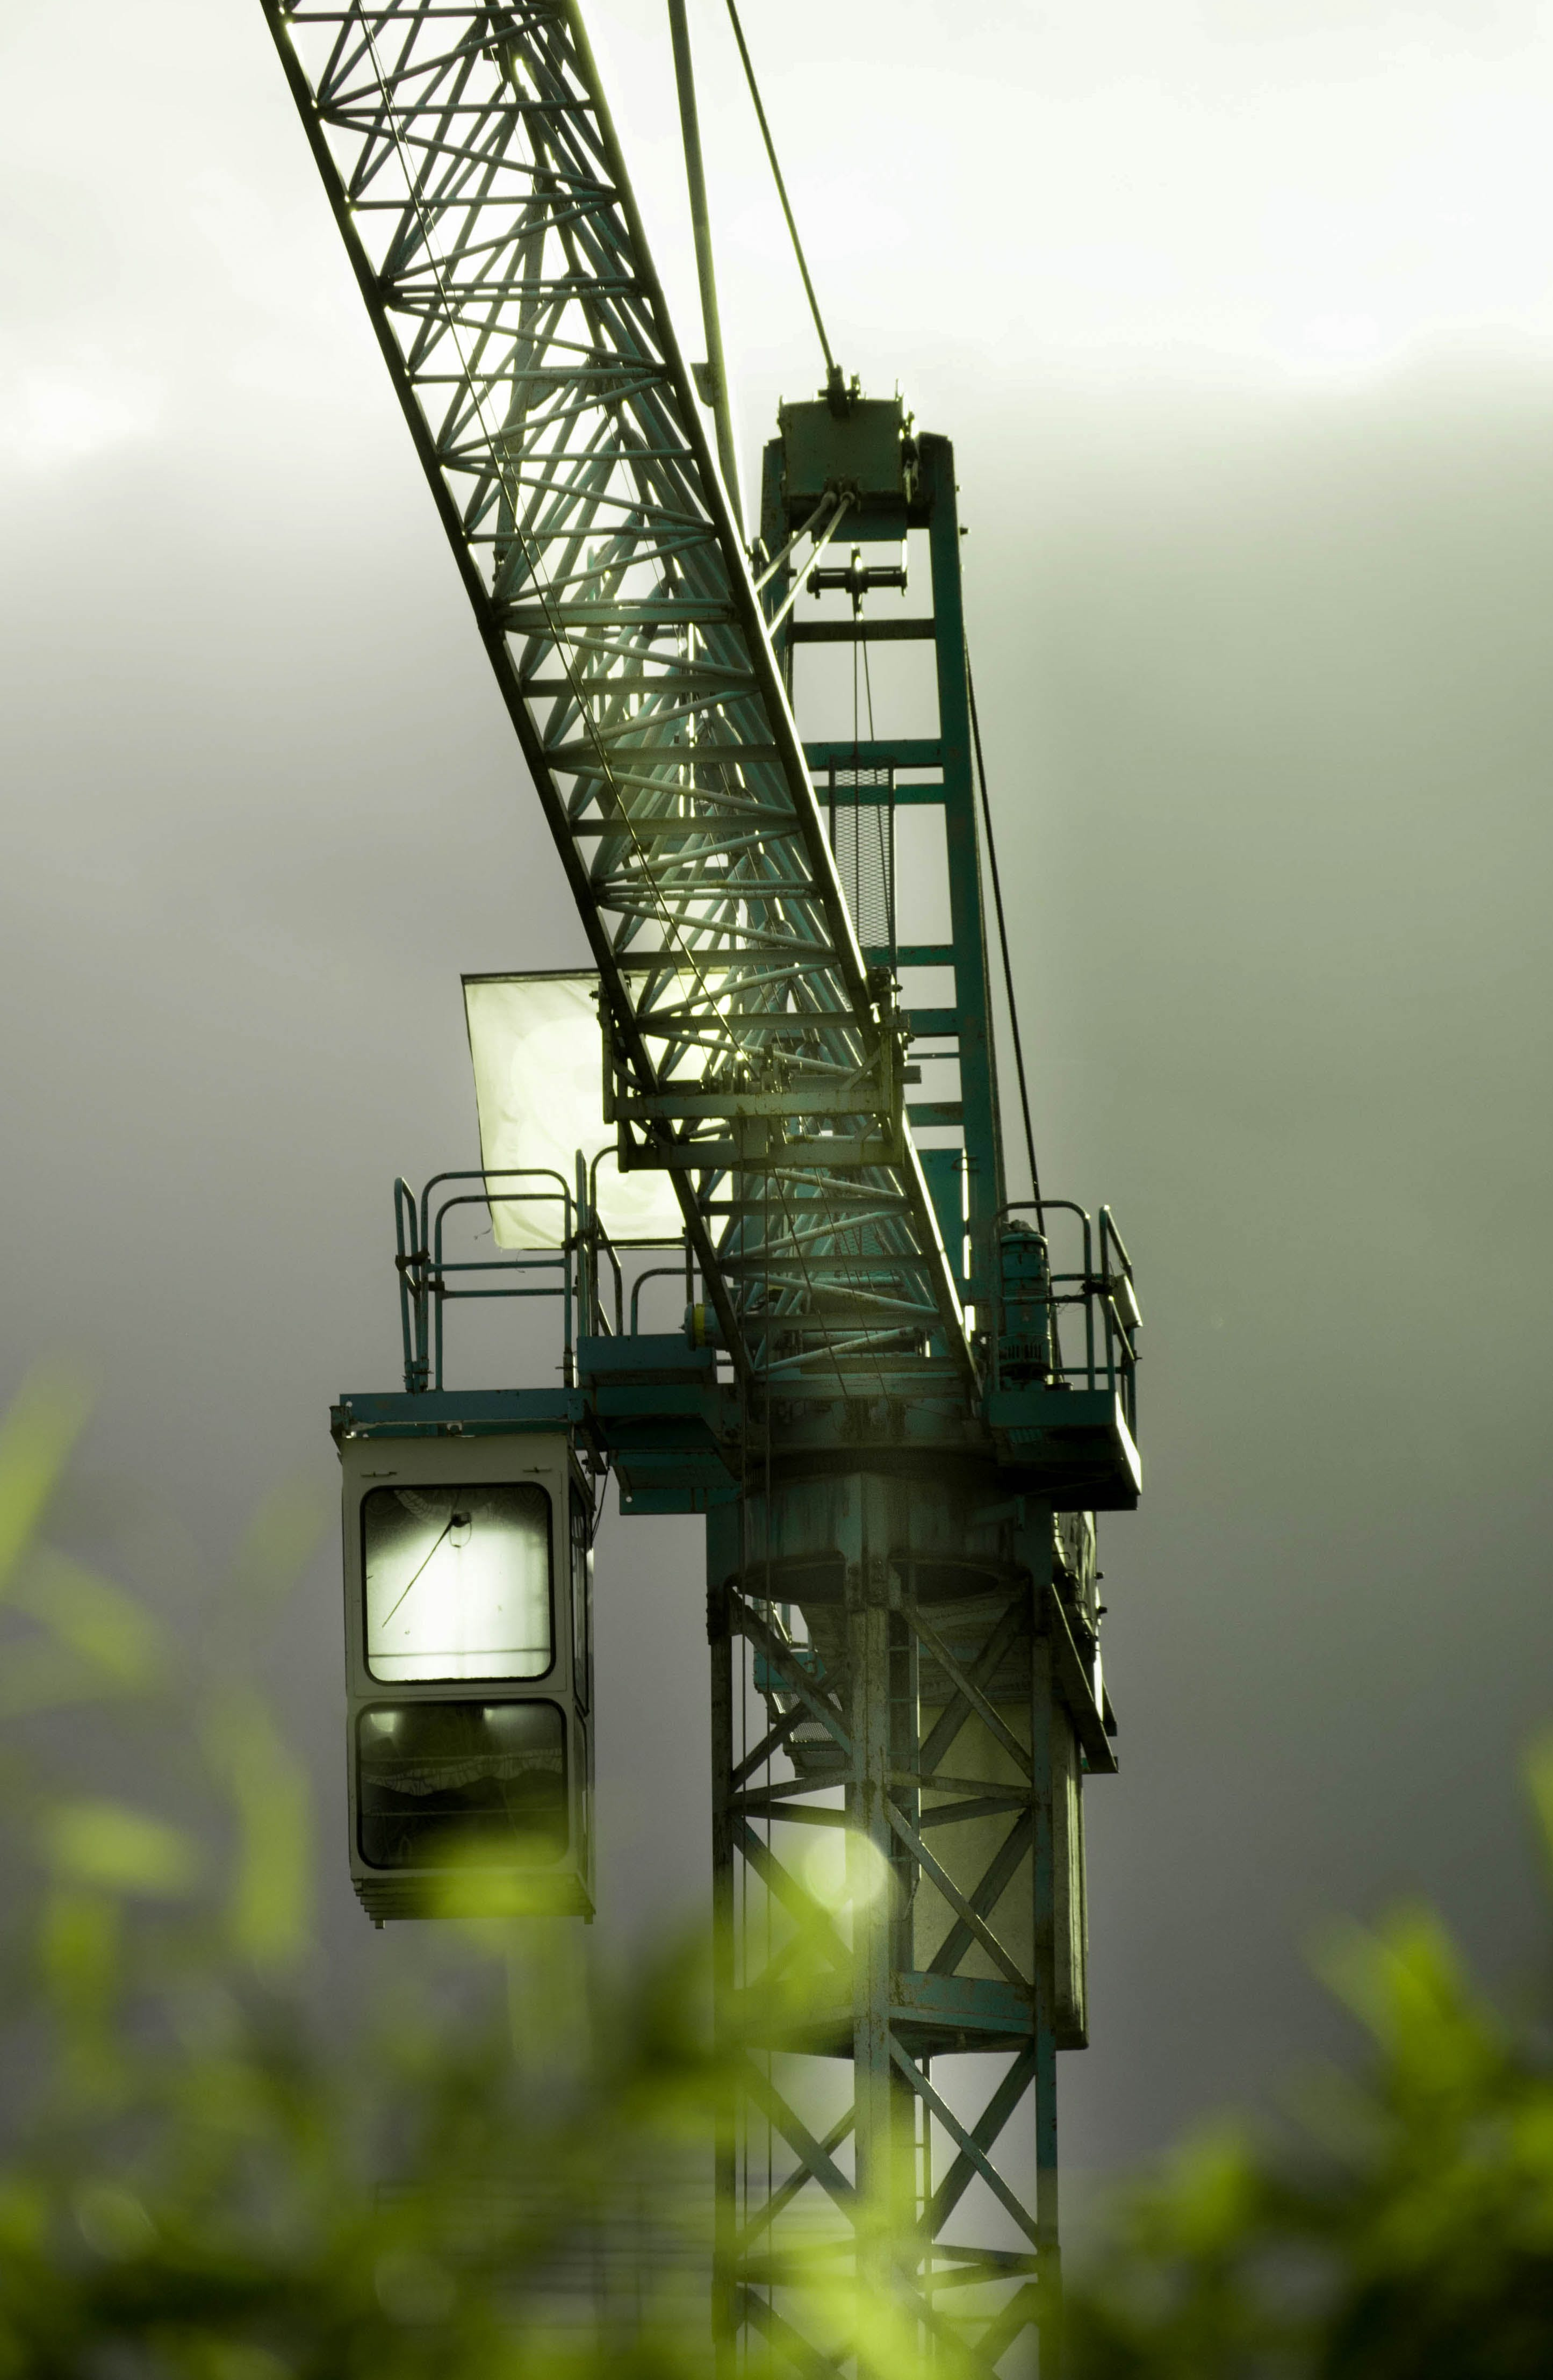 Tilt Lens Photography of Black Steel Crane